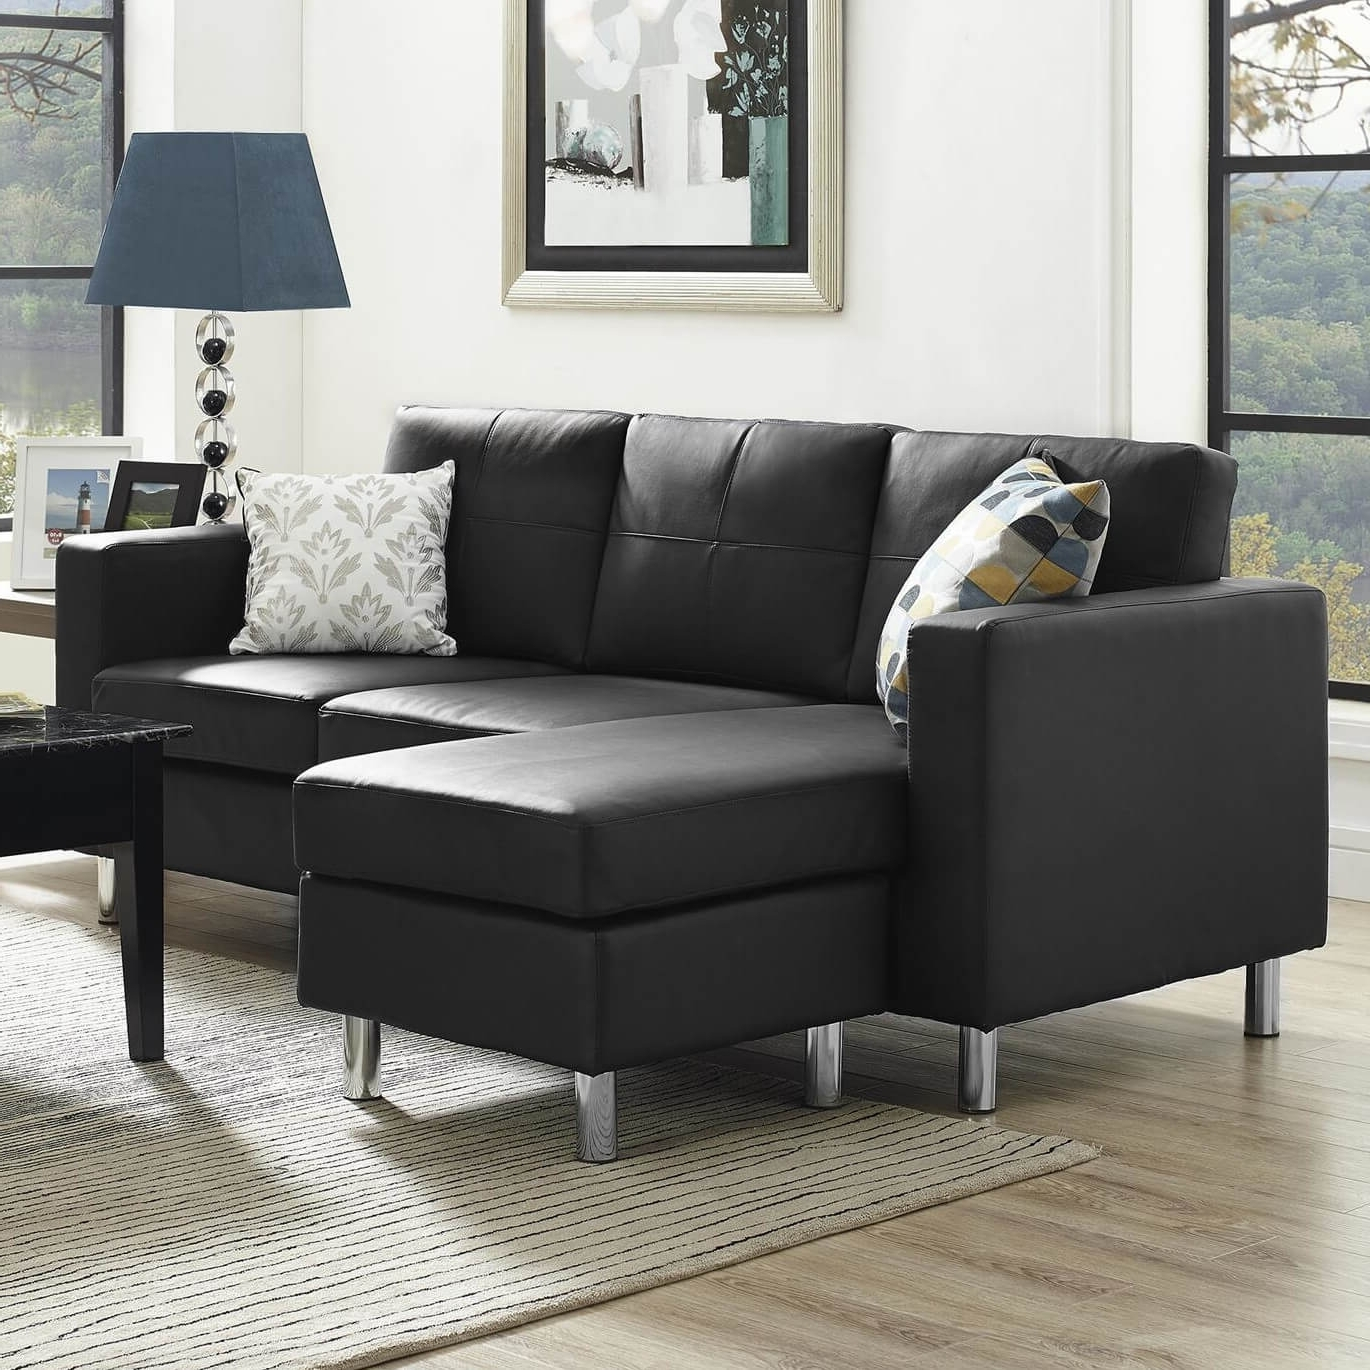 Most Popular Sectional Sofas Under 700 Intended For 40 Cheap Sectional Sofas Under $500 For  (View 10 of 20)